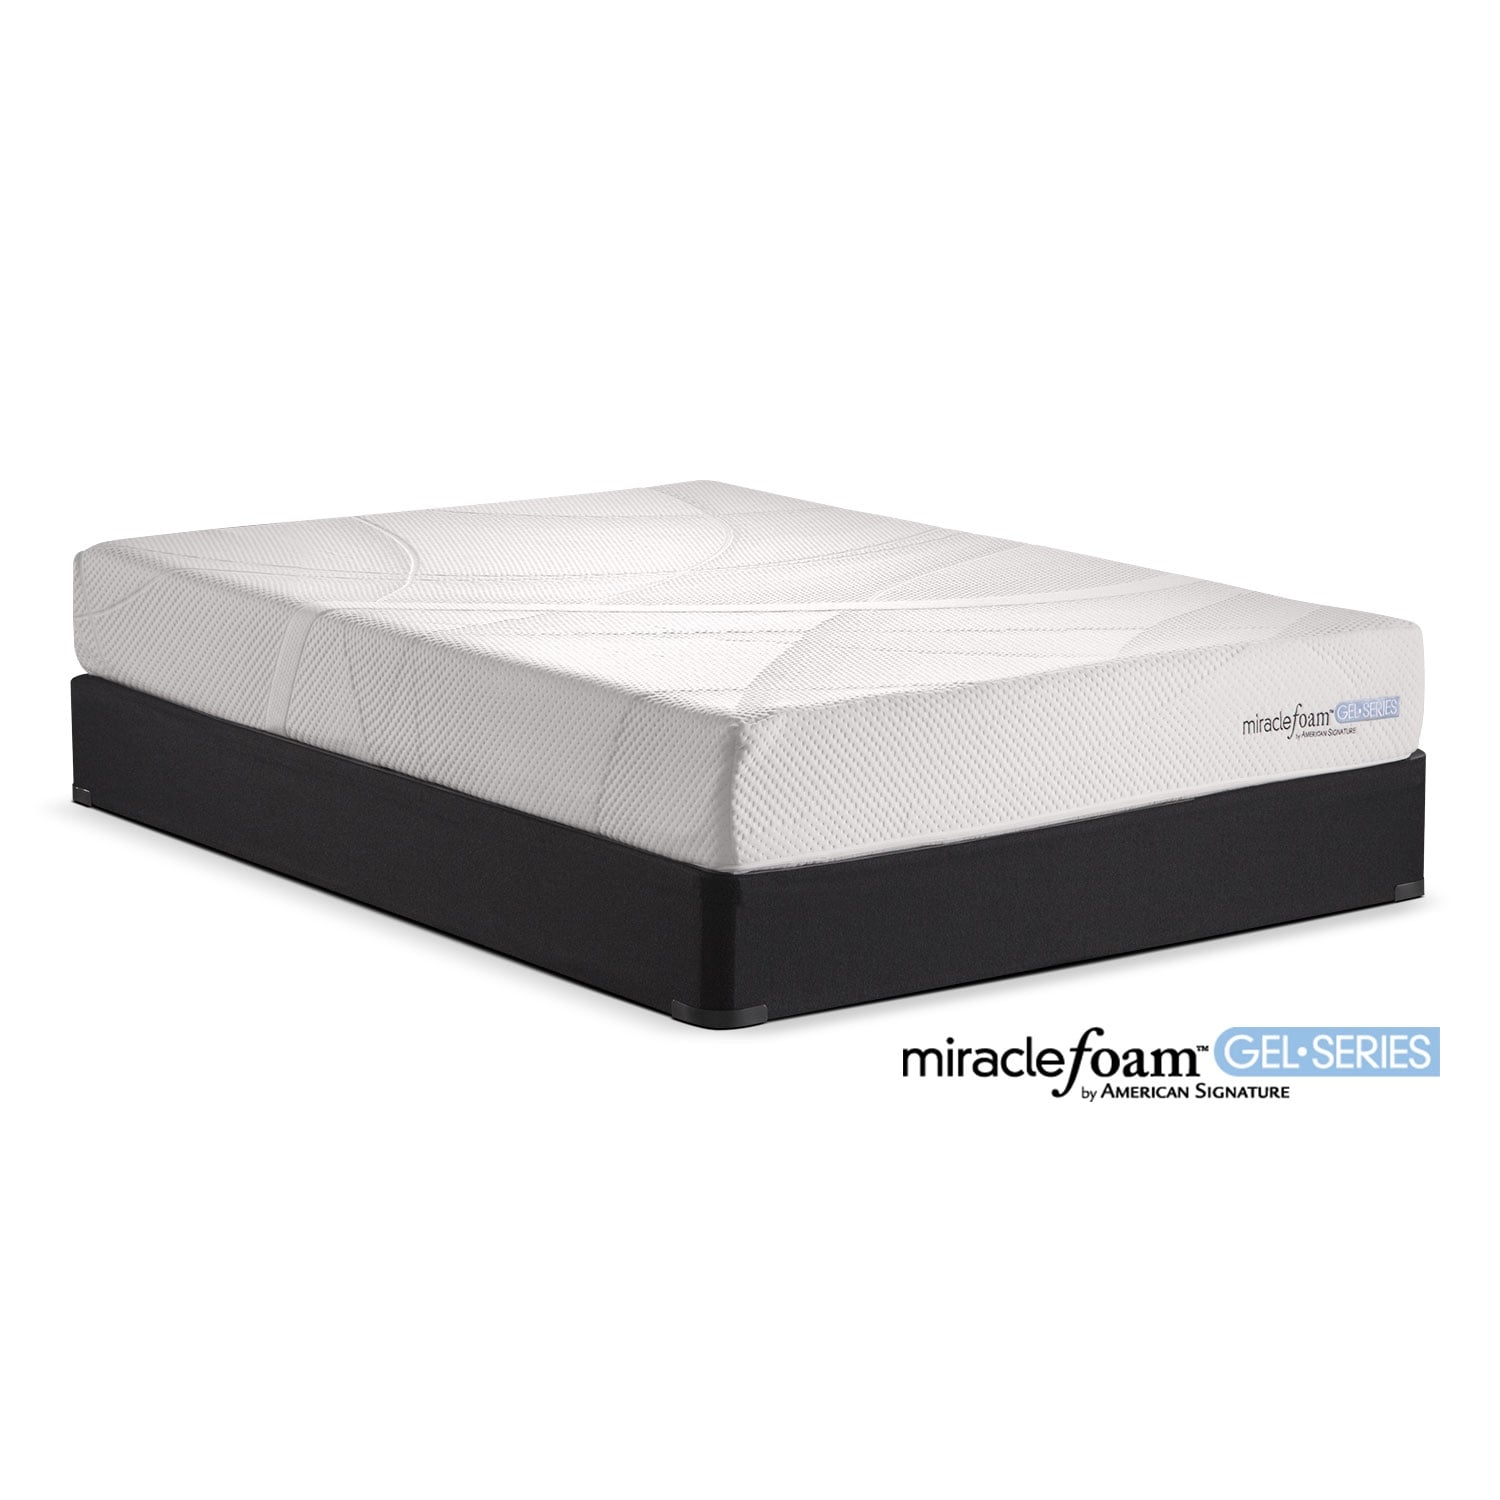 Mattresses and Bedding - Rejuvenate II Queen Mattress/Split Foundation Set